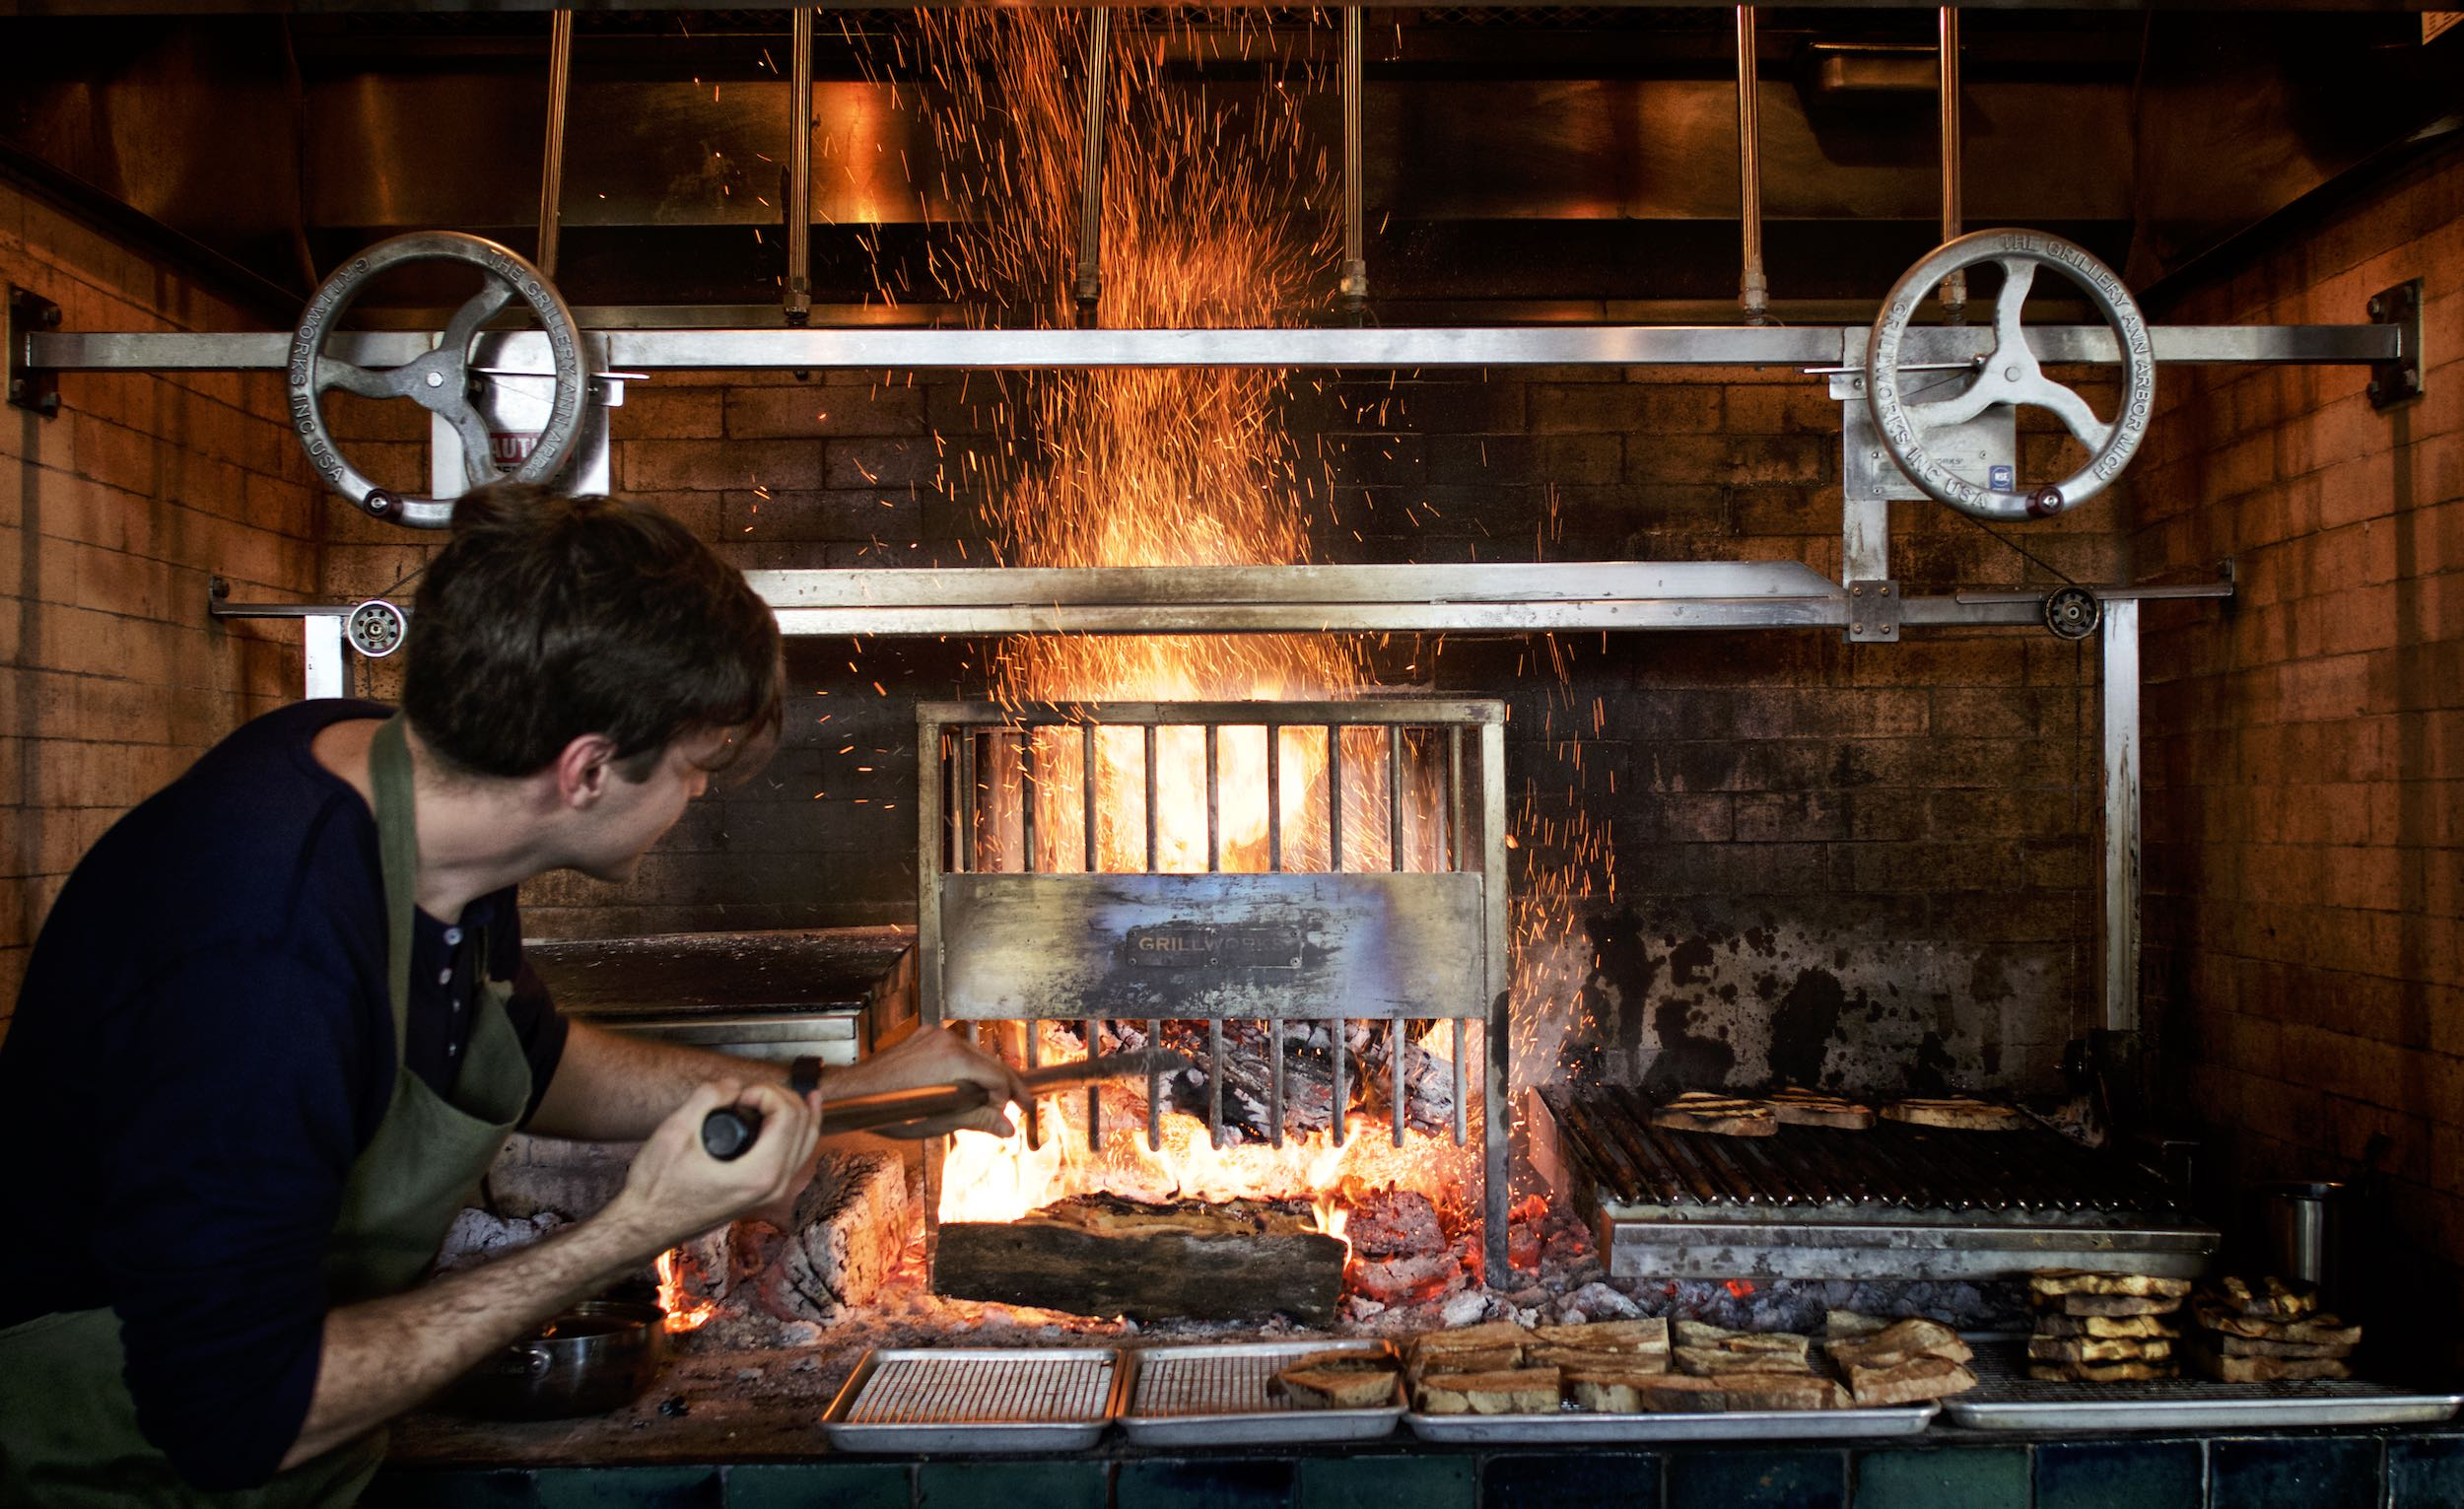 Jody Horton Photography - Chef stoking fire in brick oven.